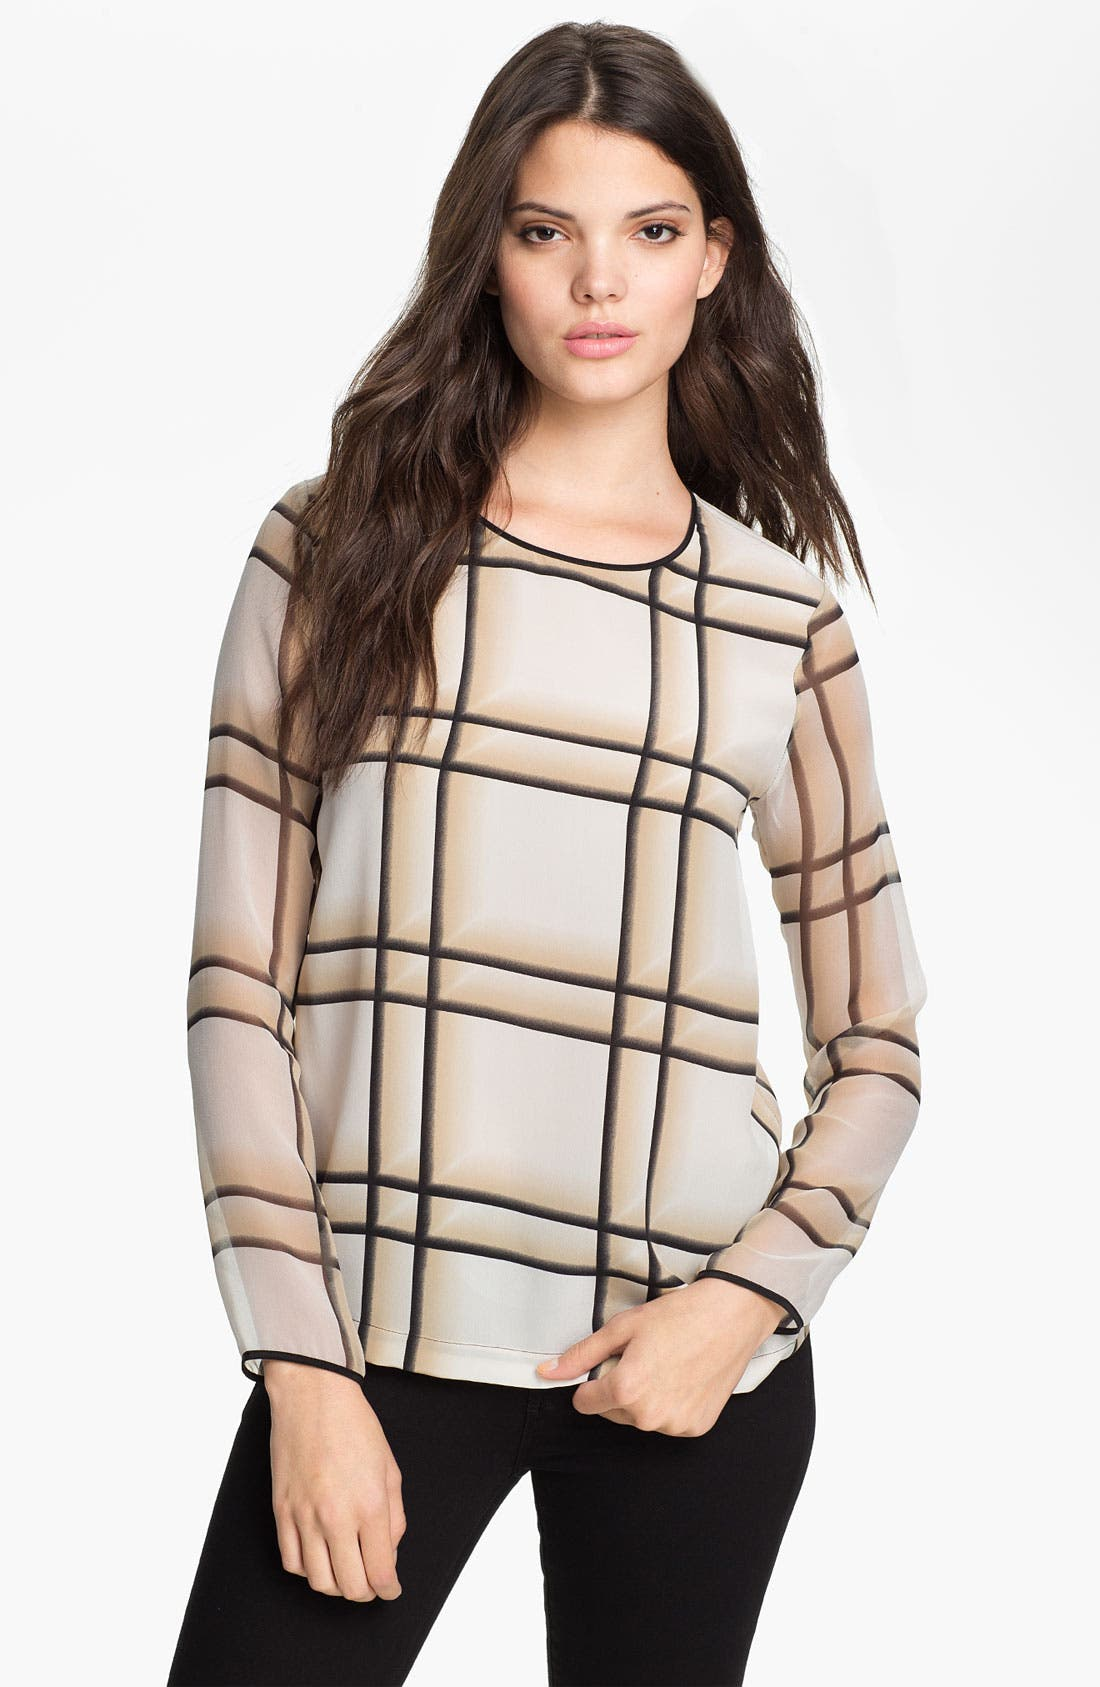 Alternate Image 1 Selected - Robert Rodriguez Ombré Plaid Silk Top